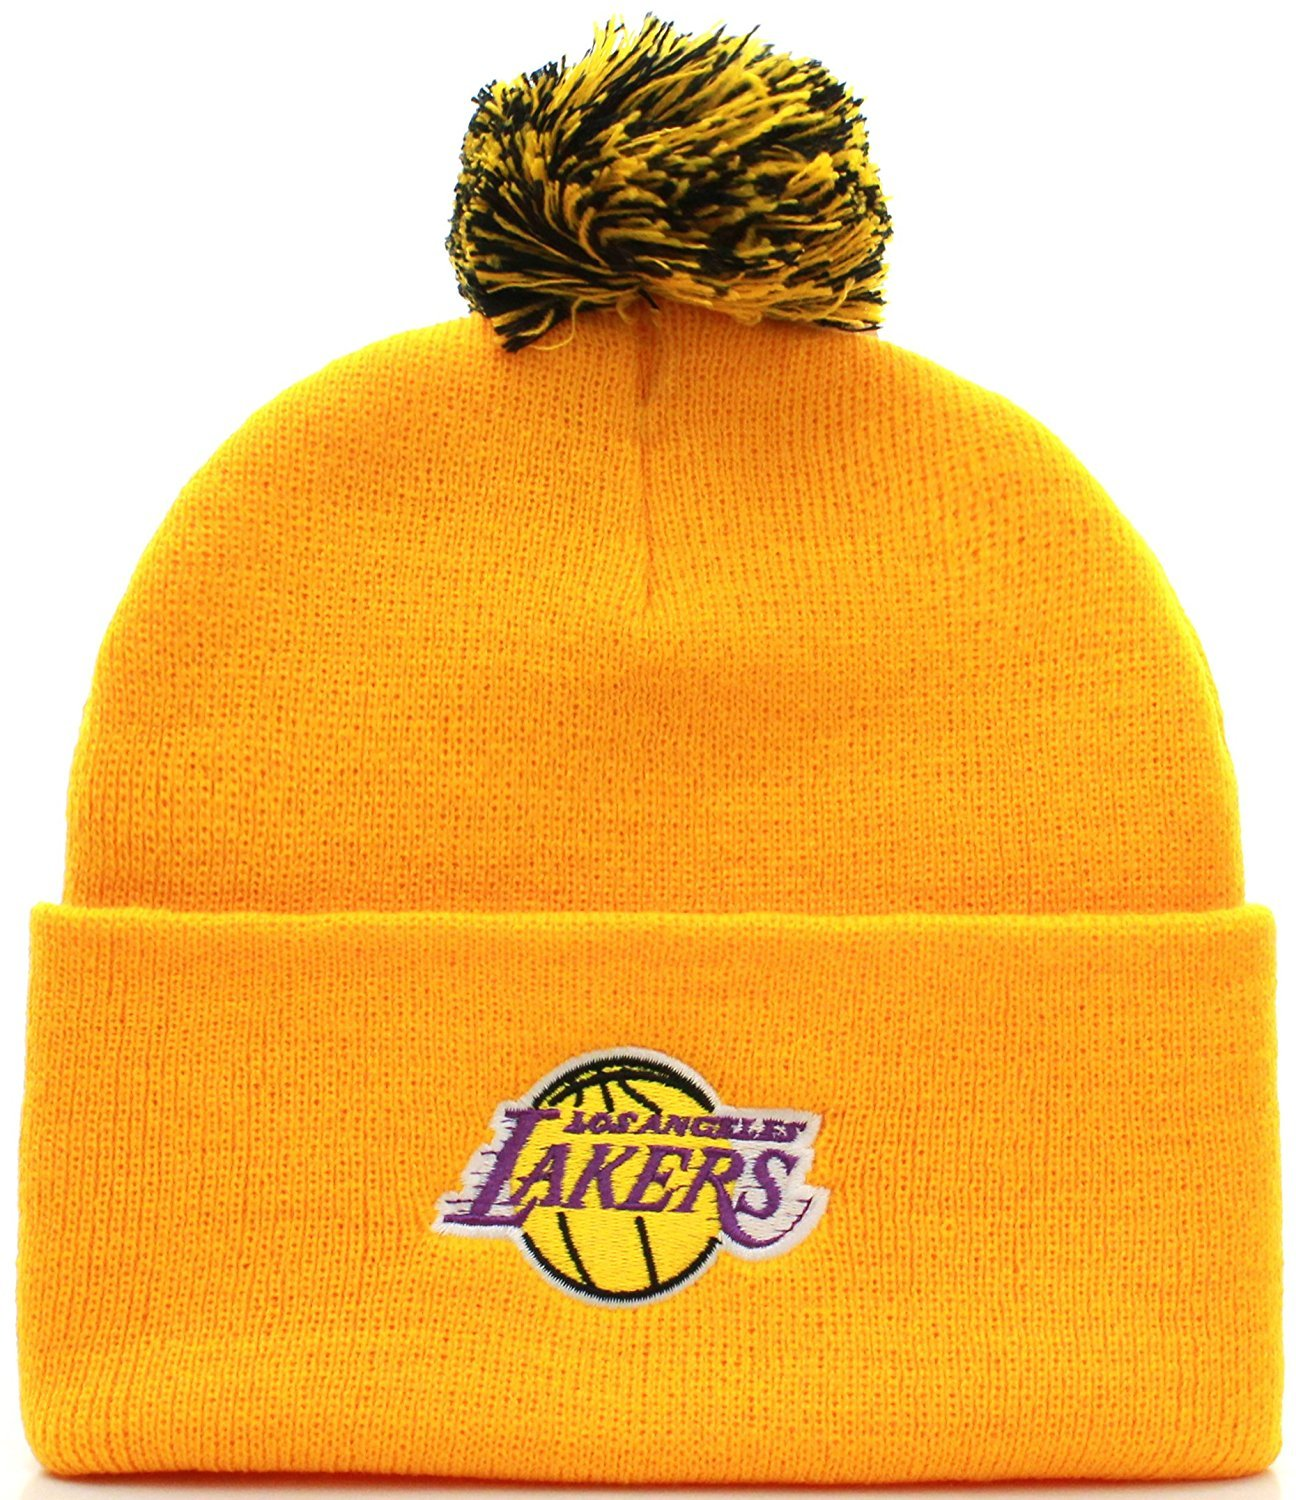 NBA Los Angeles Lakers Basketball Pom Pom Beanie Knit Hat Cap (Adult One Size, Yellow)